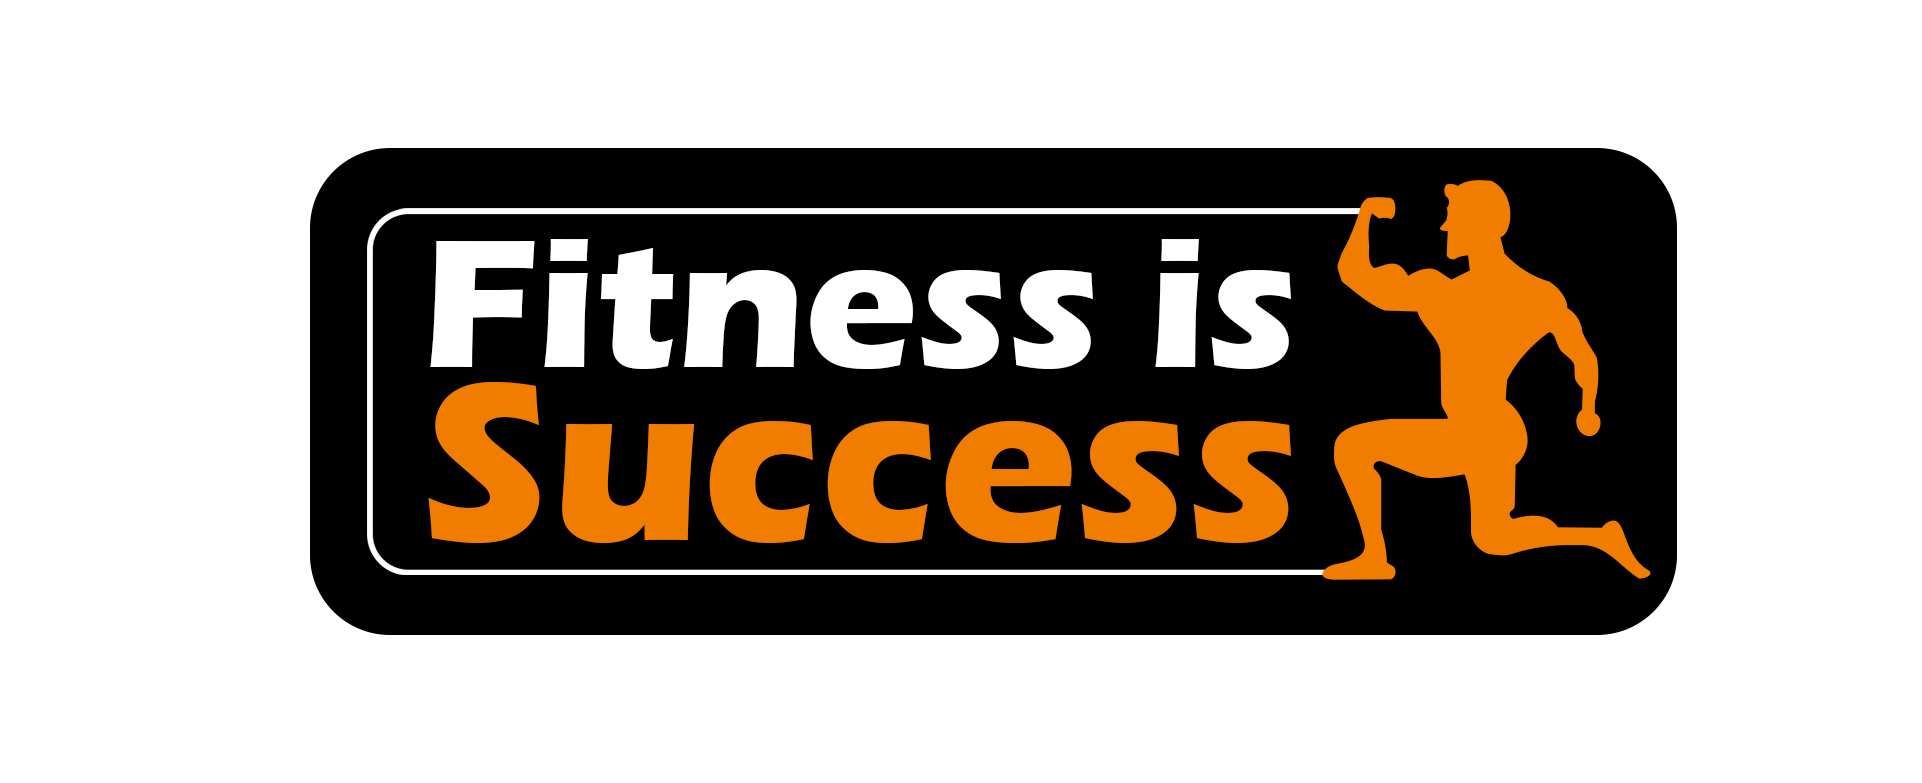 Mansonry Custom Layouts | Fitness is Success